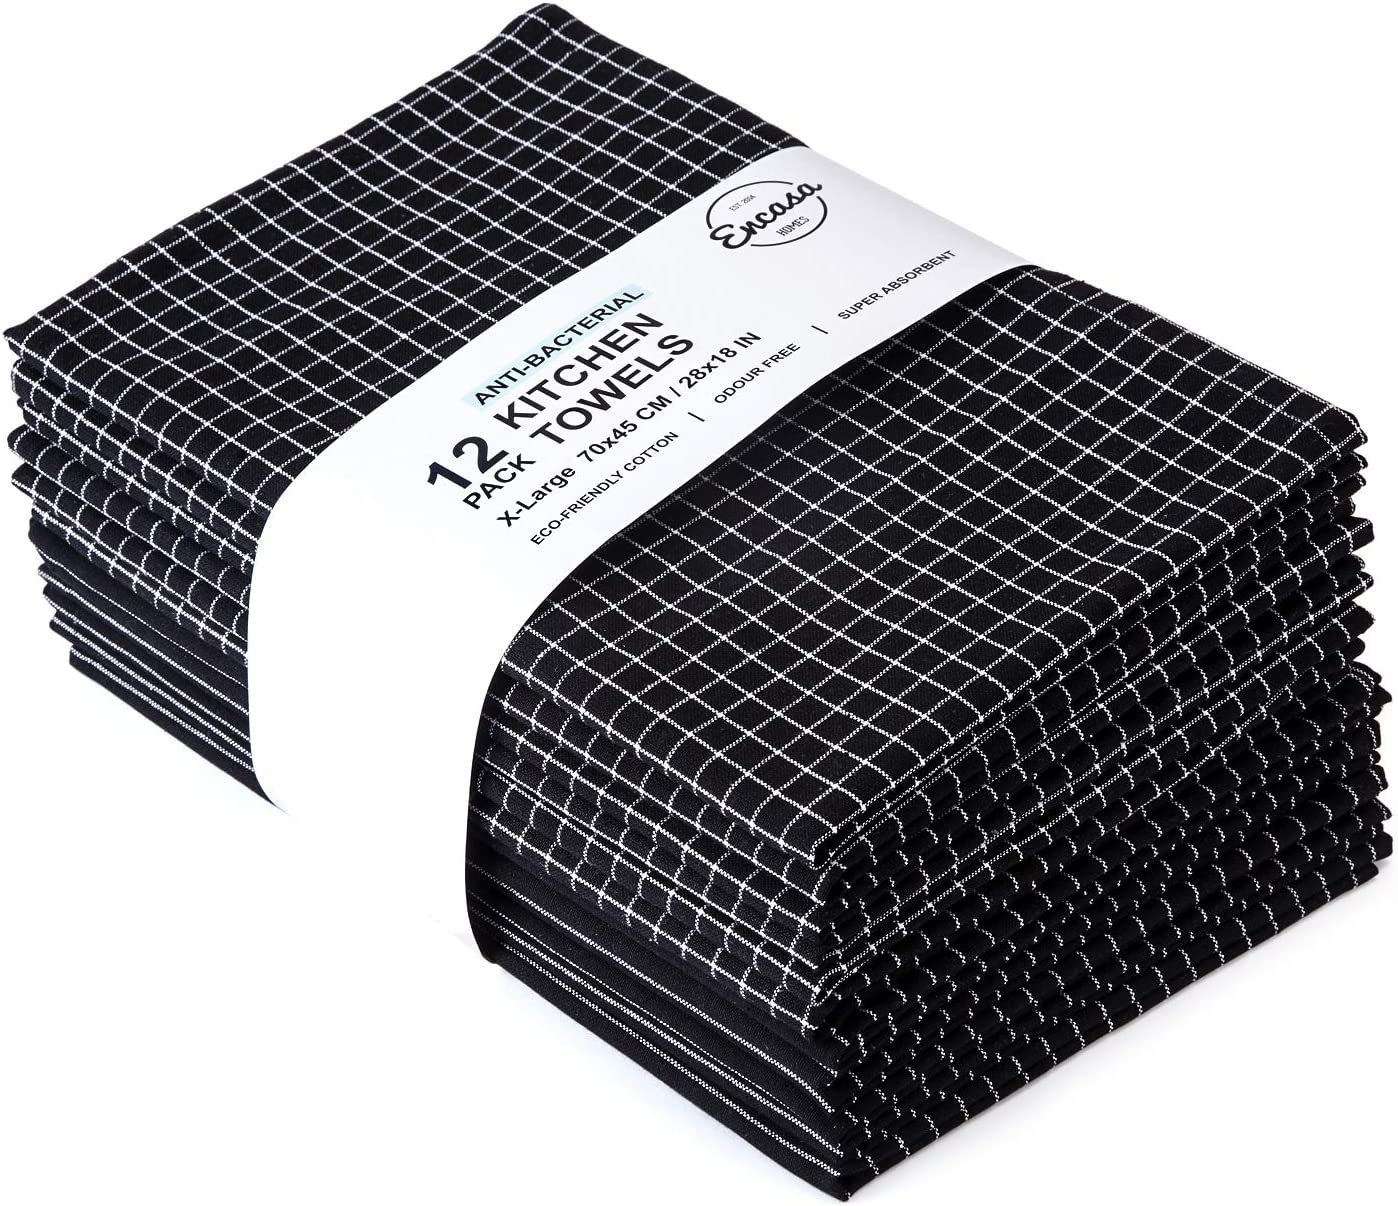 Encasa Homes Kitchen Dish Towels X-Large 18 x 28 inch (12 pc Set), Eco-Friendly Cotton, Highly Absorbent for Cleaning & Quick Drying of Plates & Glasses - Butcher Black